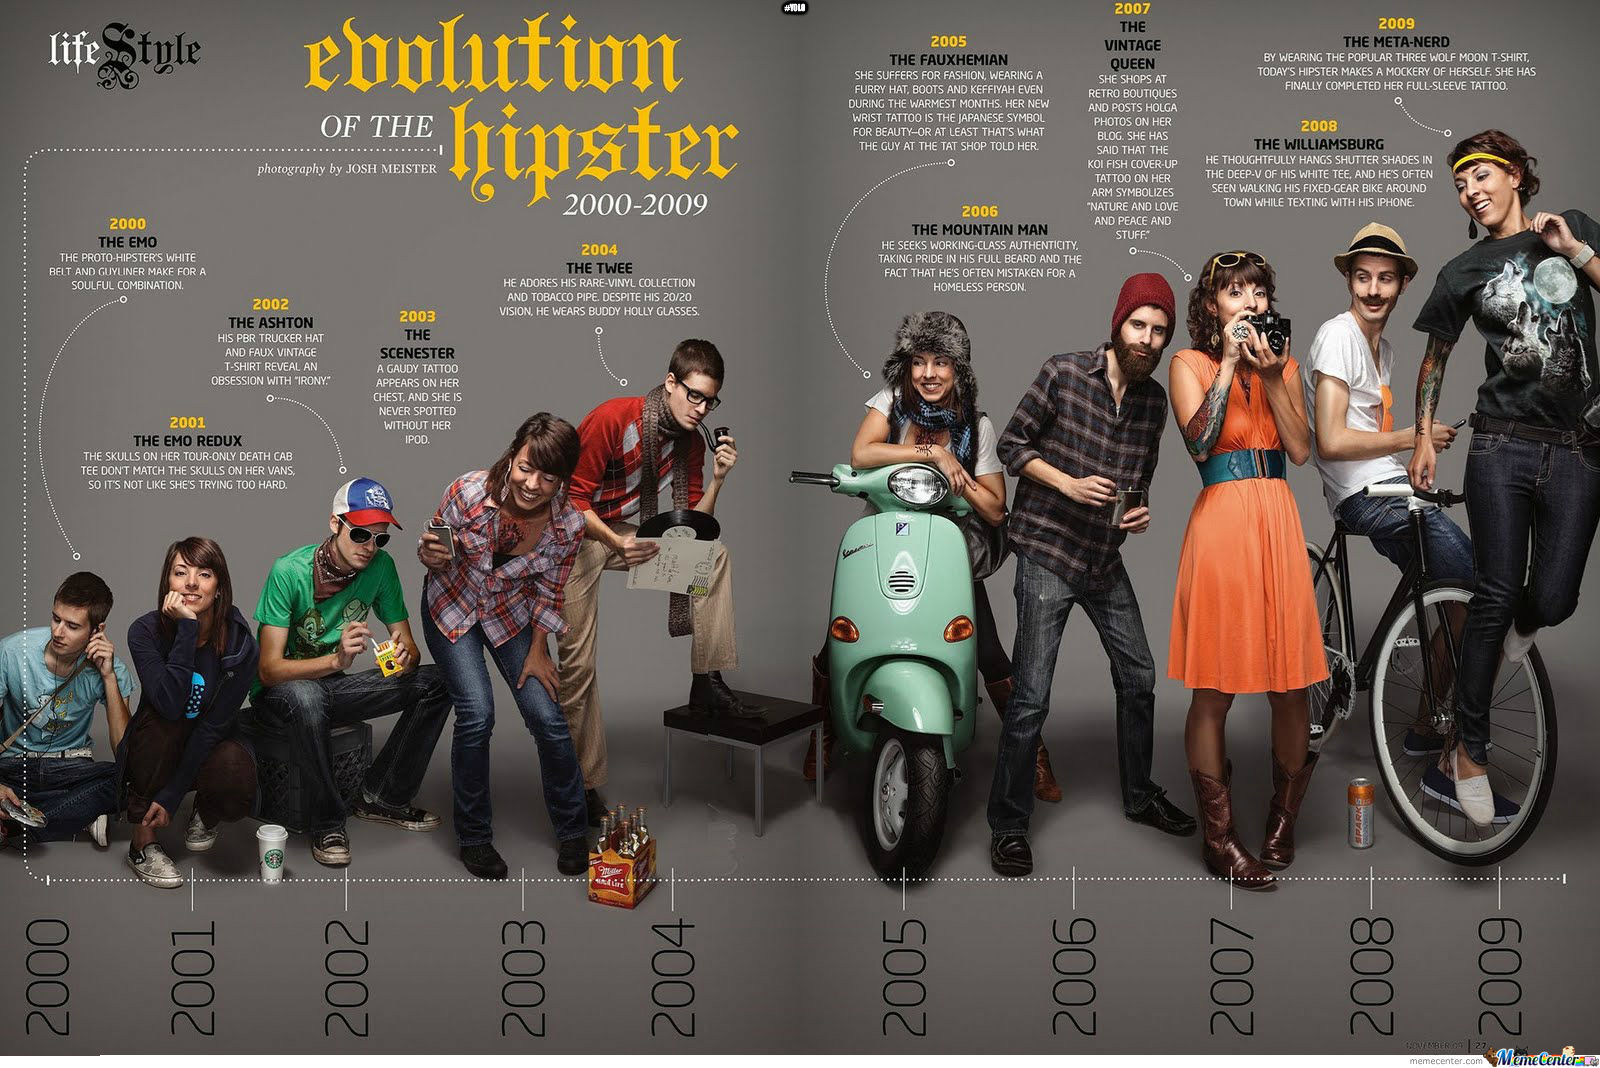 The Evolution Of Hipster